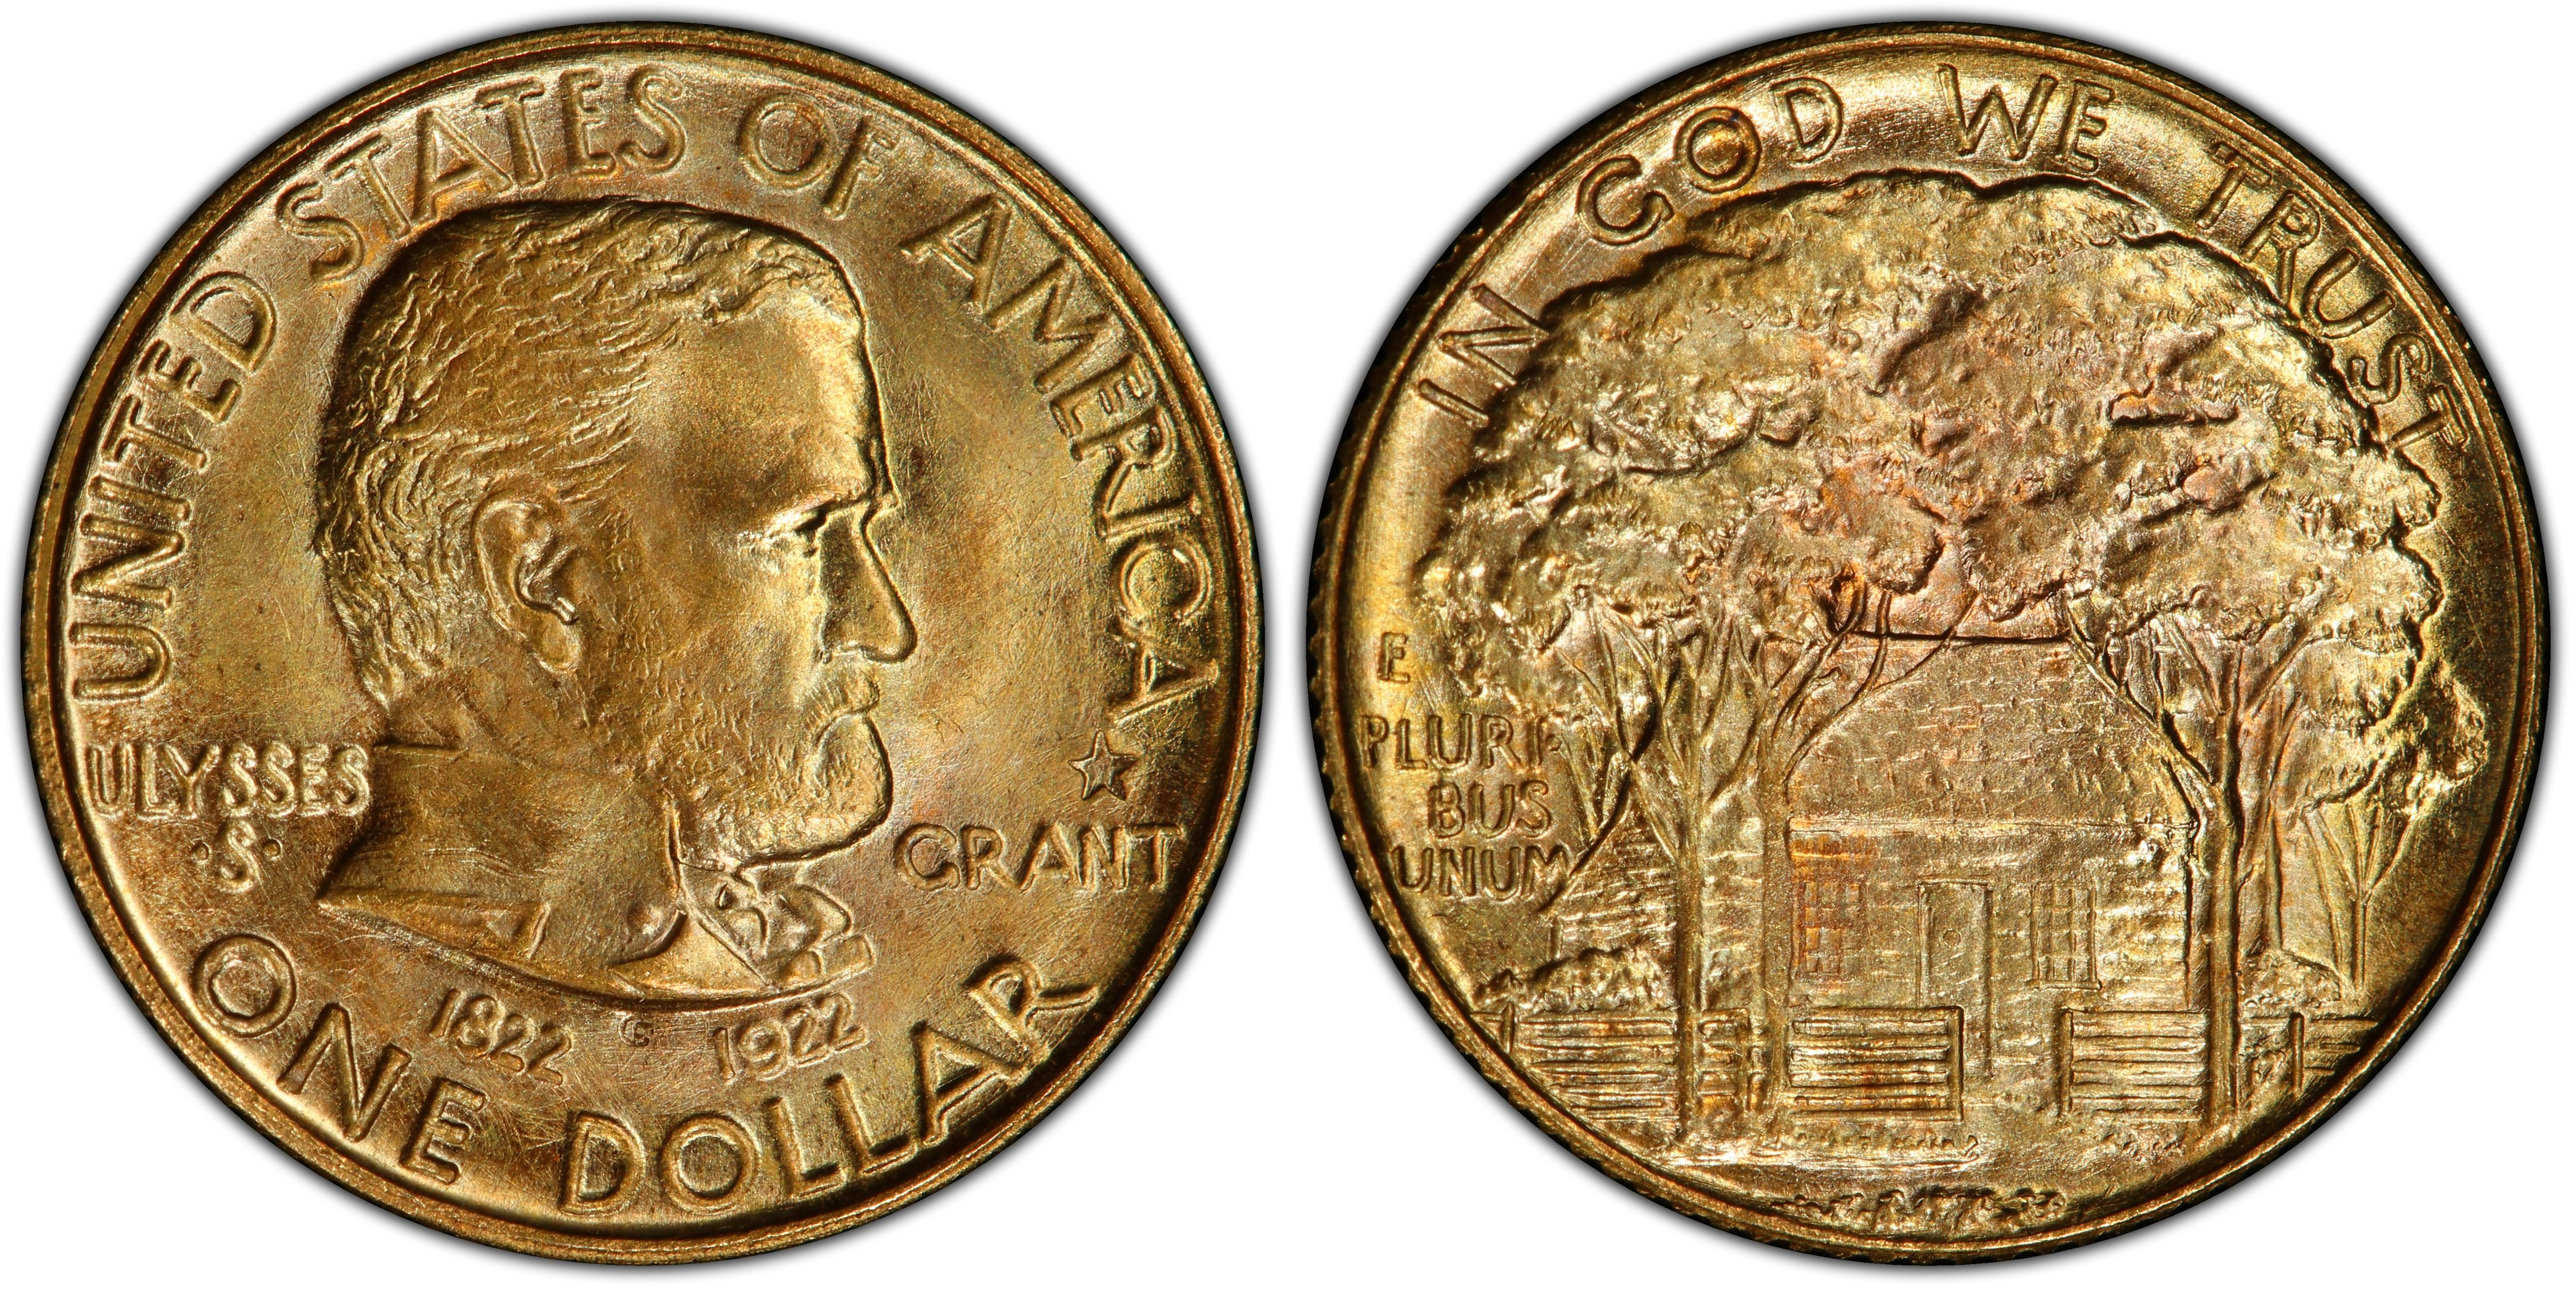 Grant Centennial Gold Dollar Commemorative Grant Centennial Gold Dollar Commemorative With Star